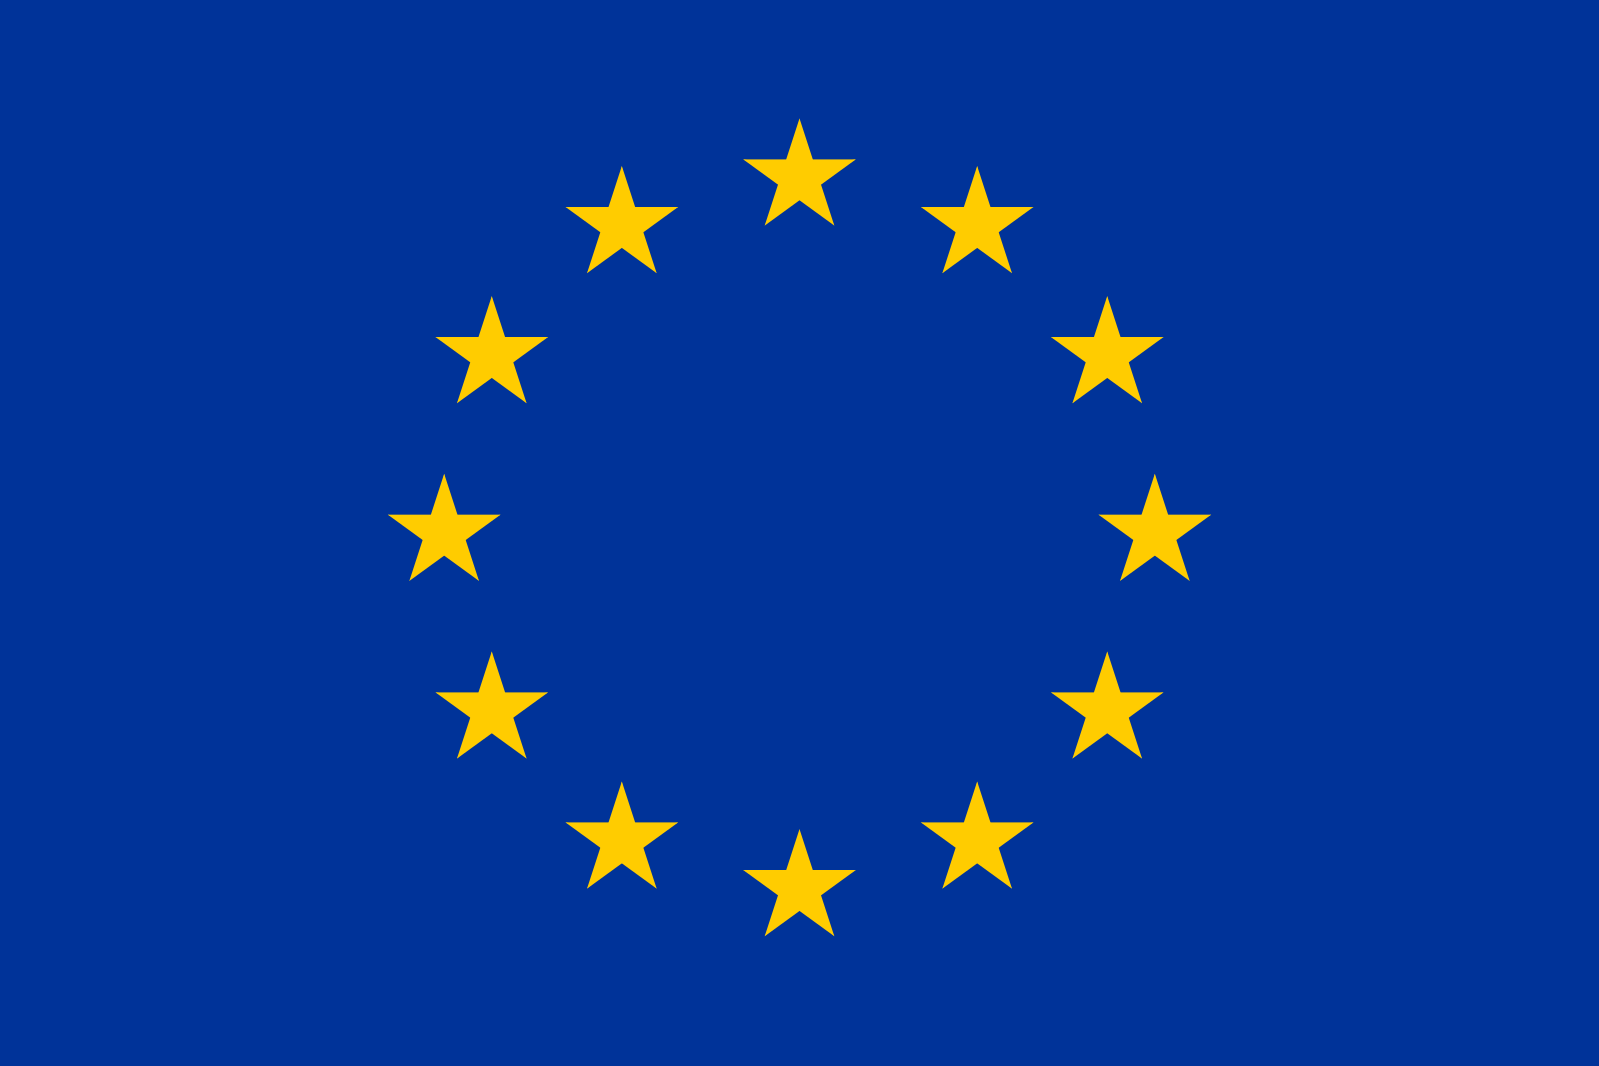 European Union - Flag